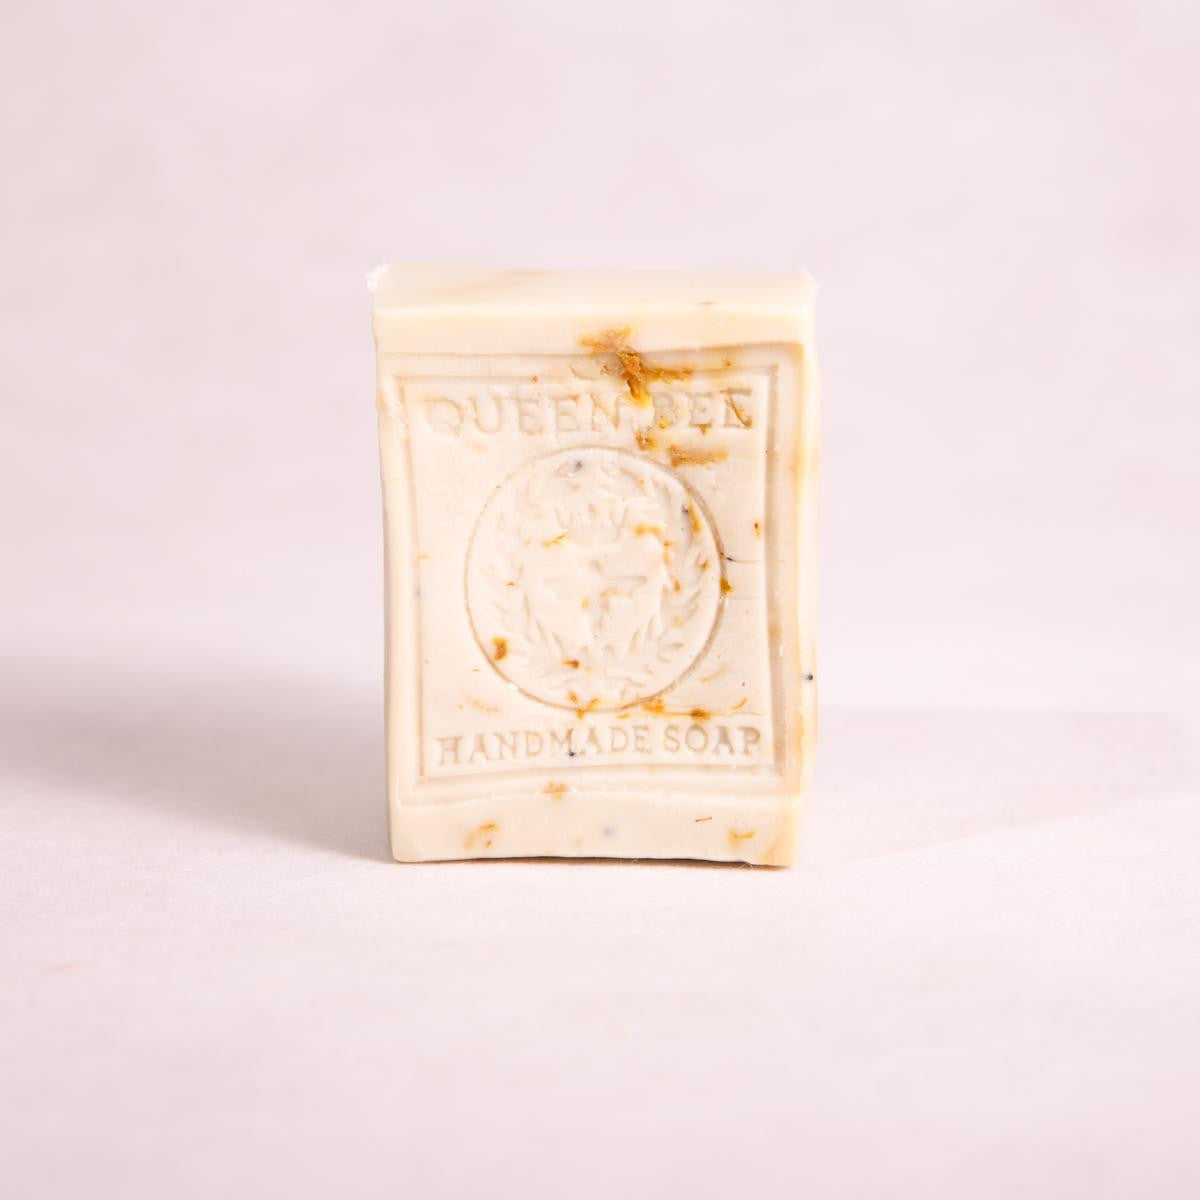 Clary Sage, Rose Geranium & Lavender Block Soap - 170g approx - Block Soap - Throw Some Seeds - Australian gardening gifts and eco products online!